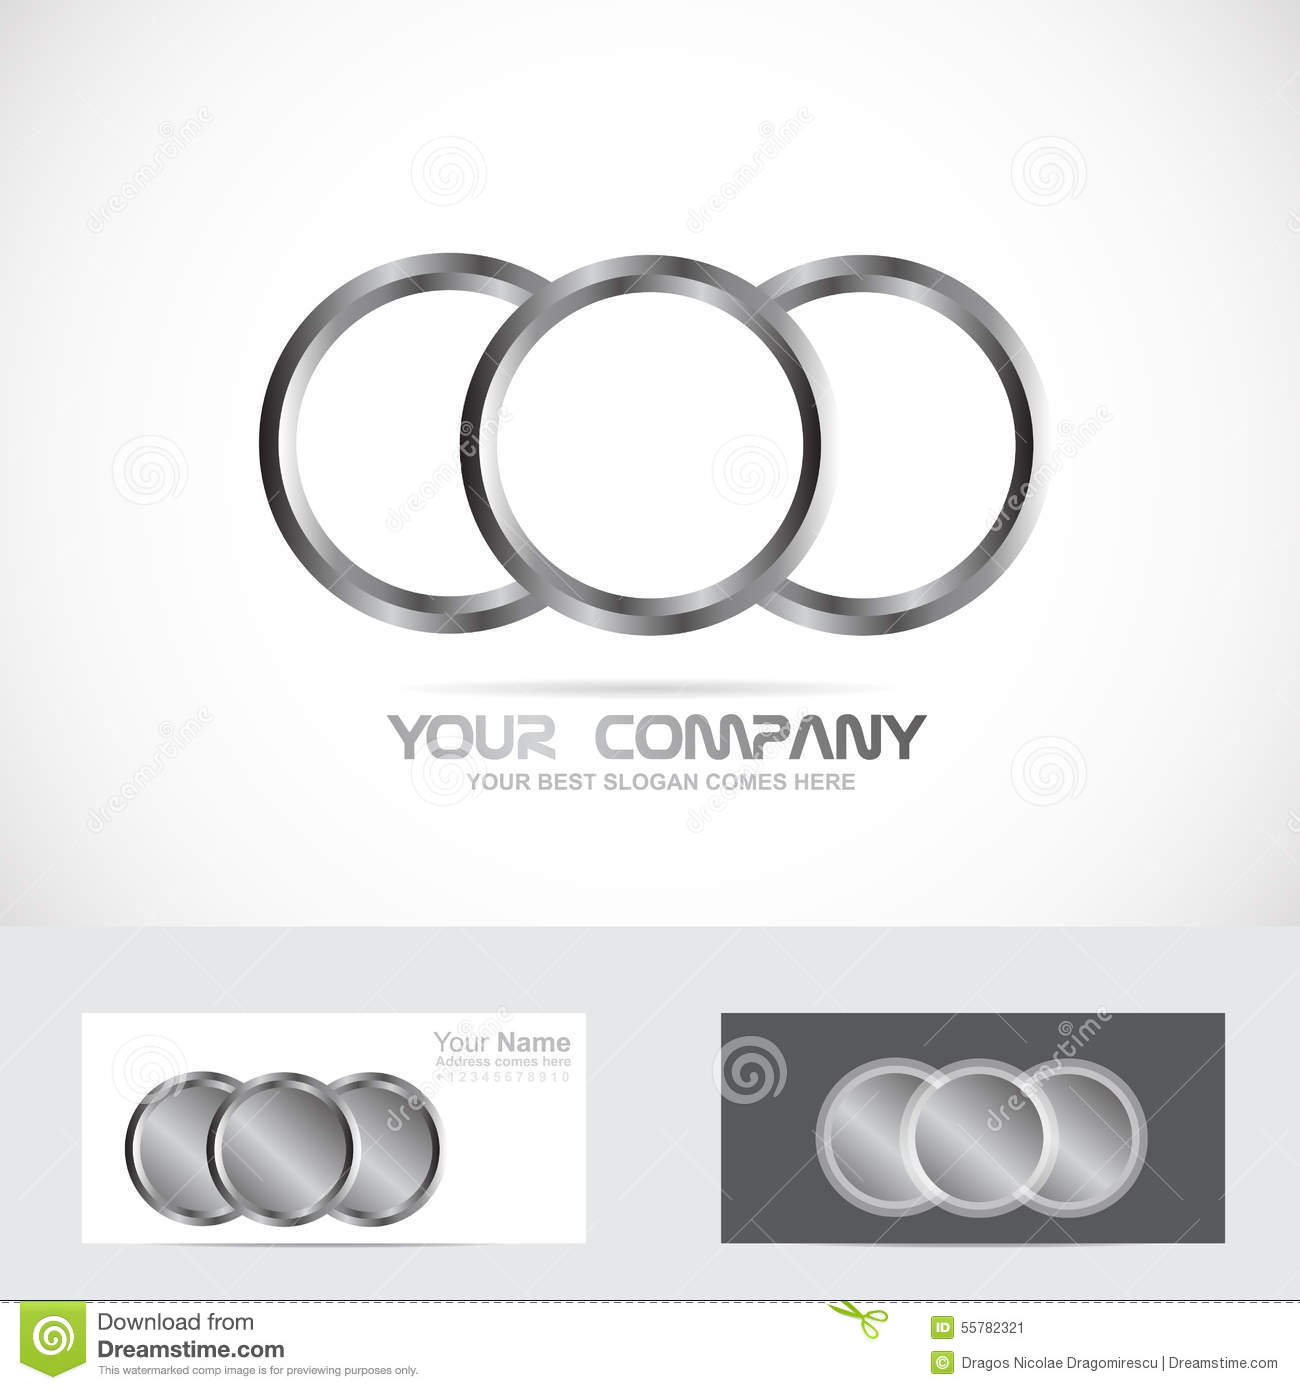 locked design rings logo circle symbol vector eternity royalty free image two loop hd infinity icon template stock logotype concept